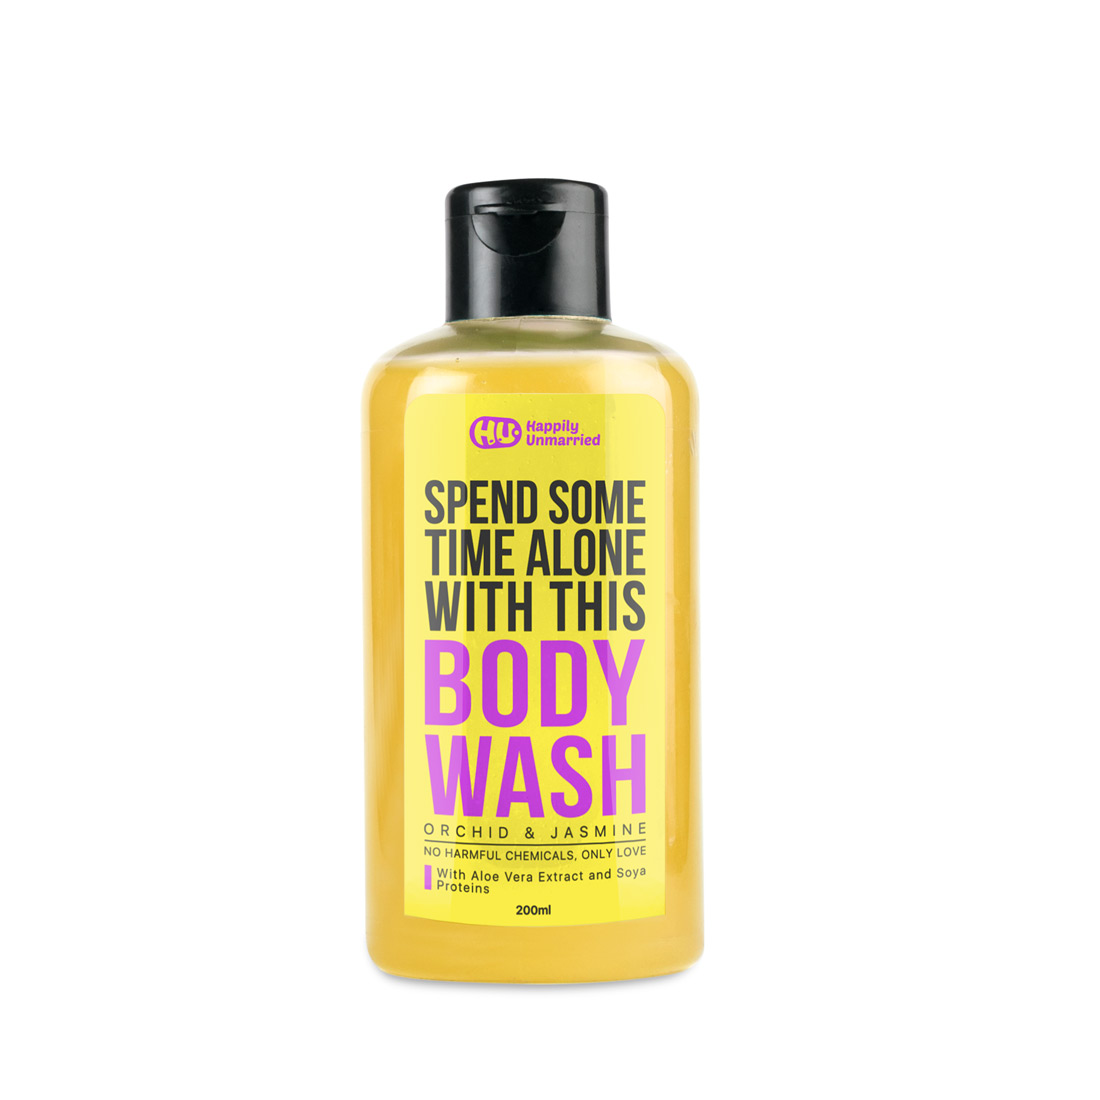 Body Wash - Orchid & Jasmine - 200ml